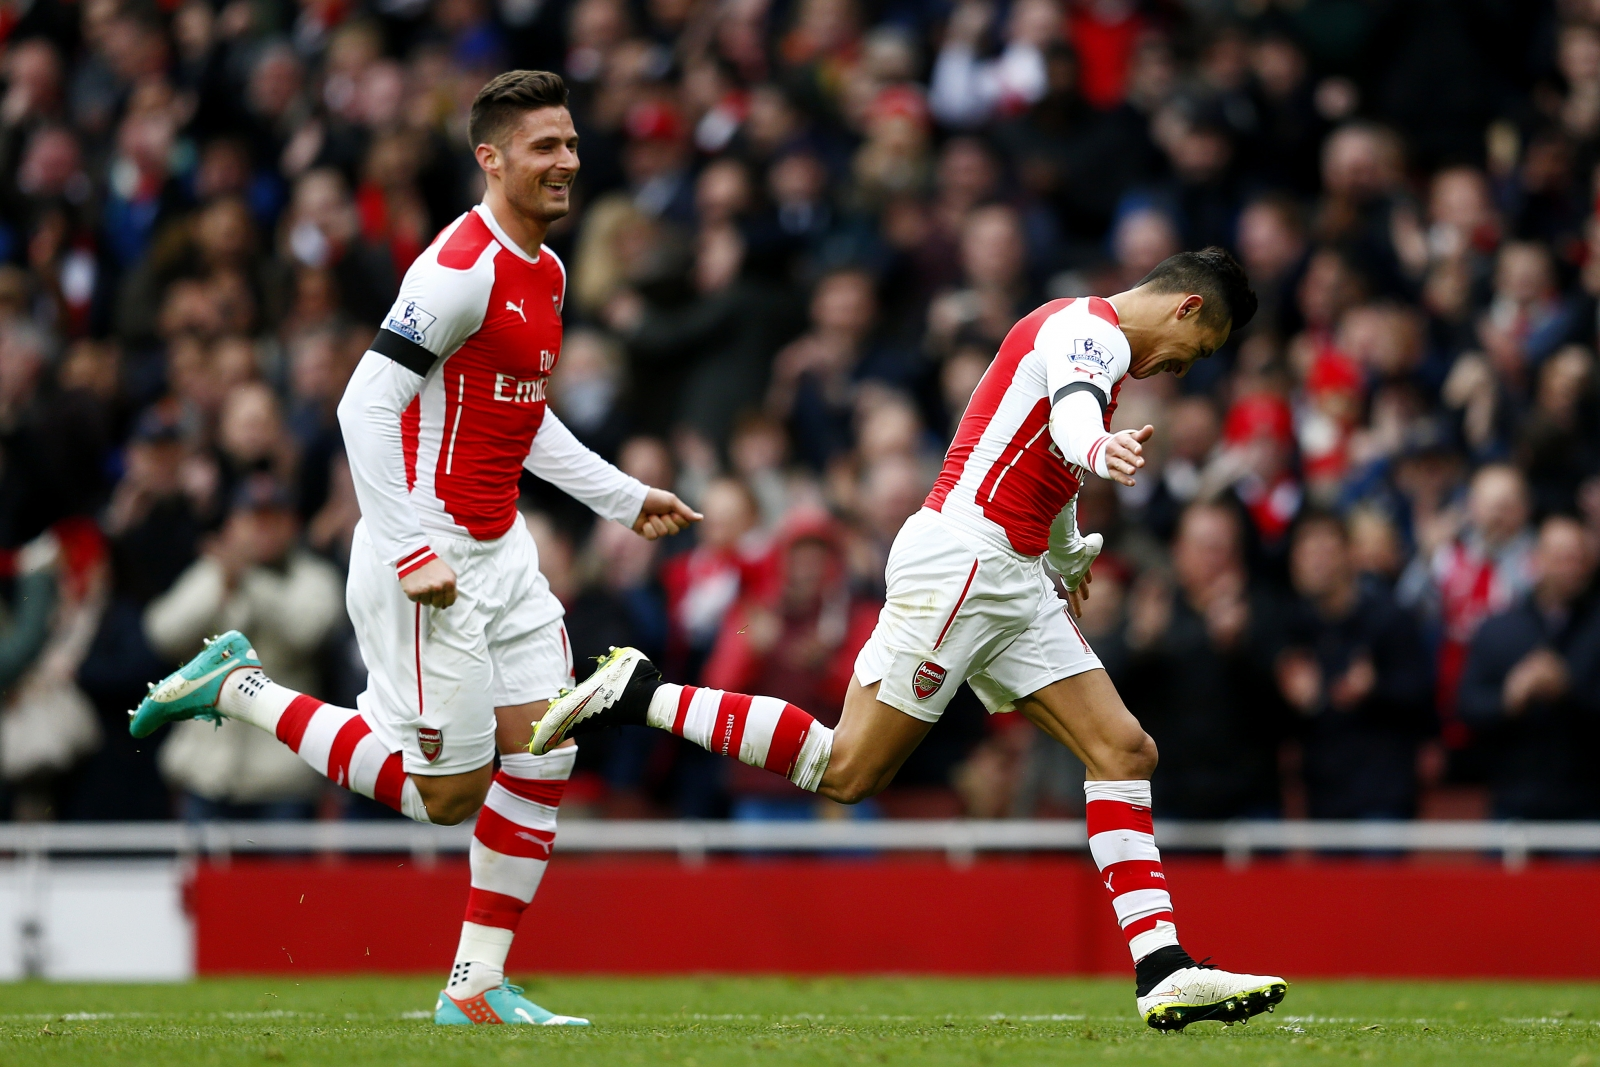 Premier League As It Happened: Arsenal 3-0 Stoke, Manchester United 0-1 Southampton